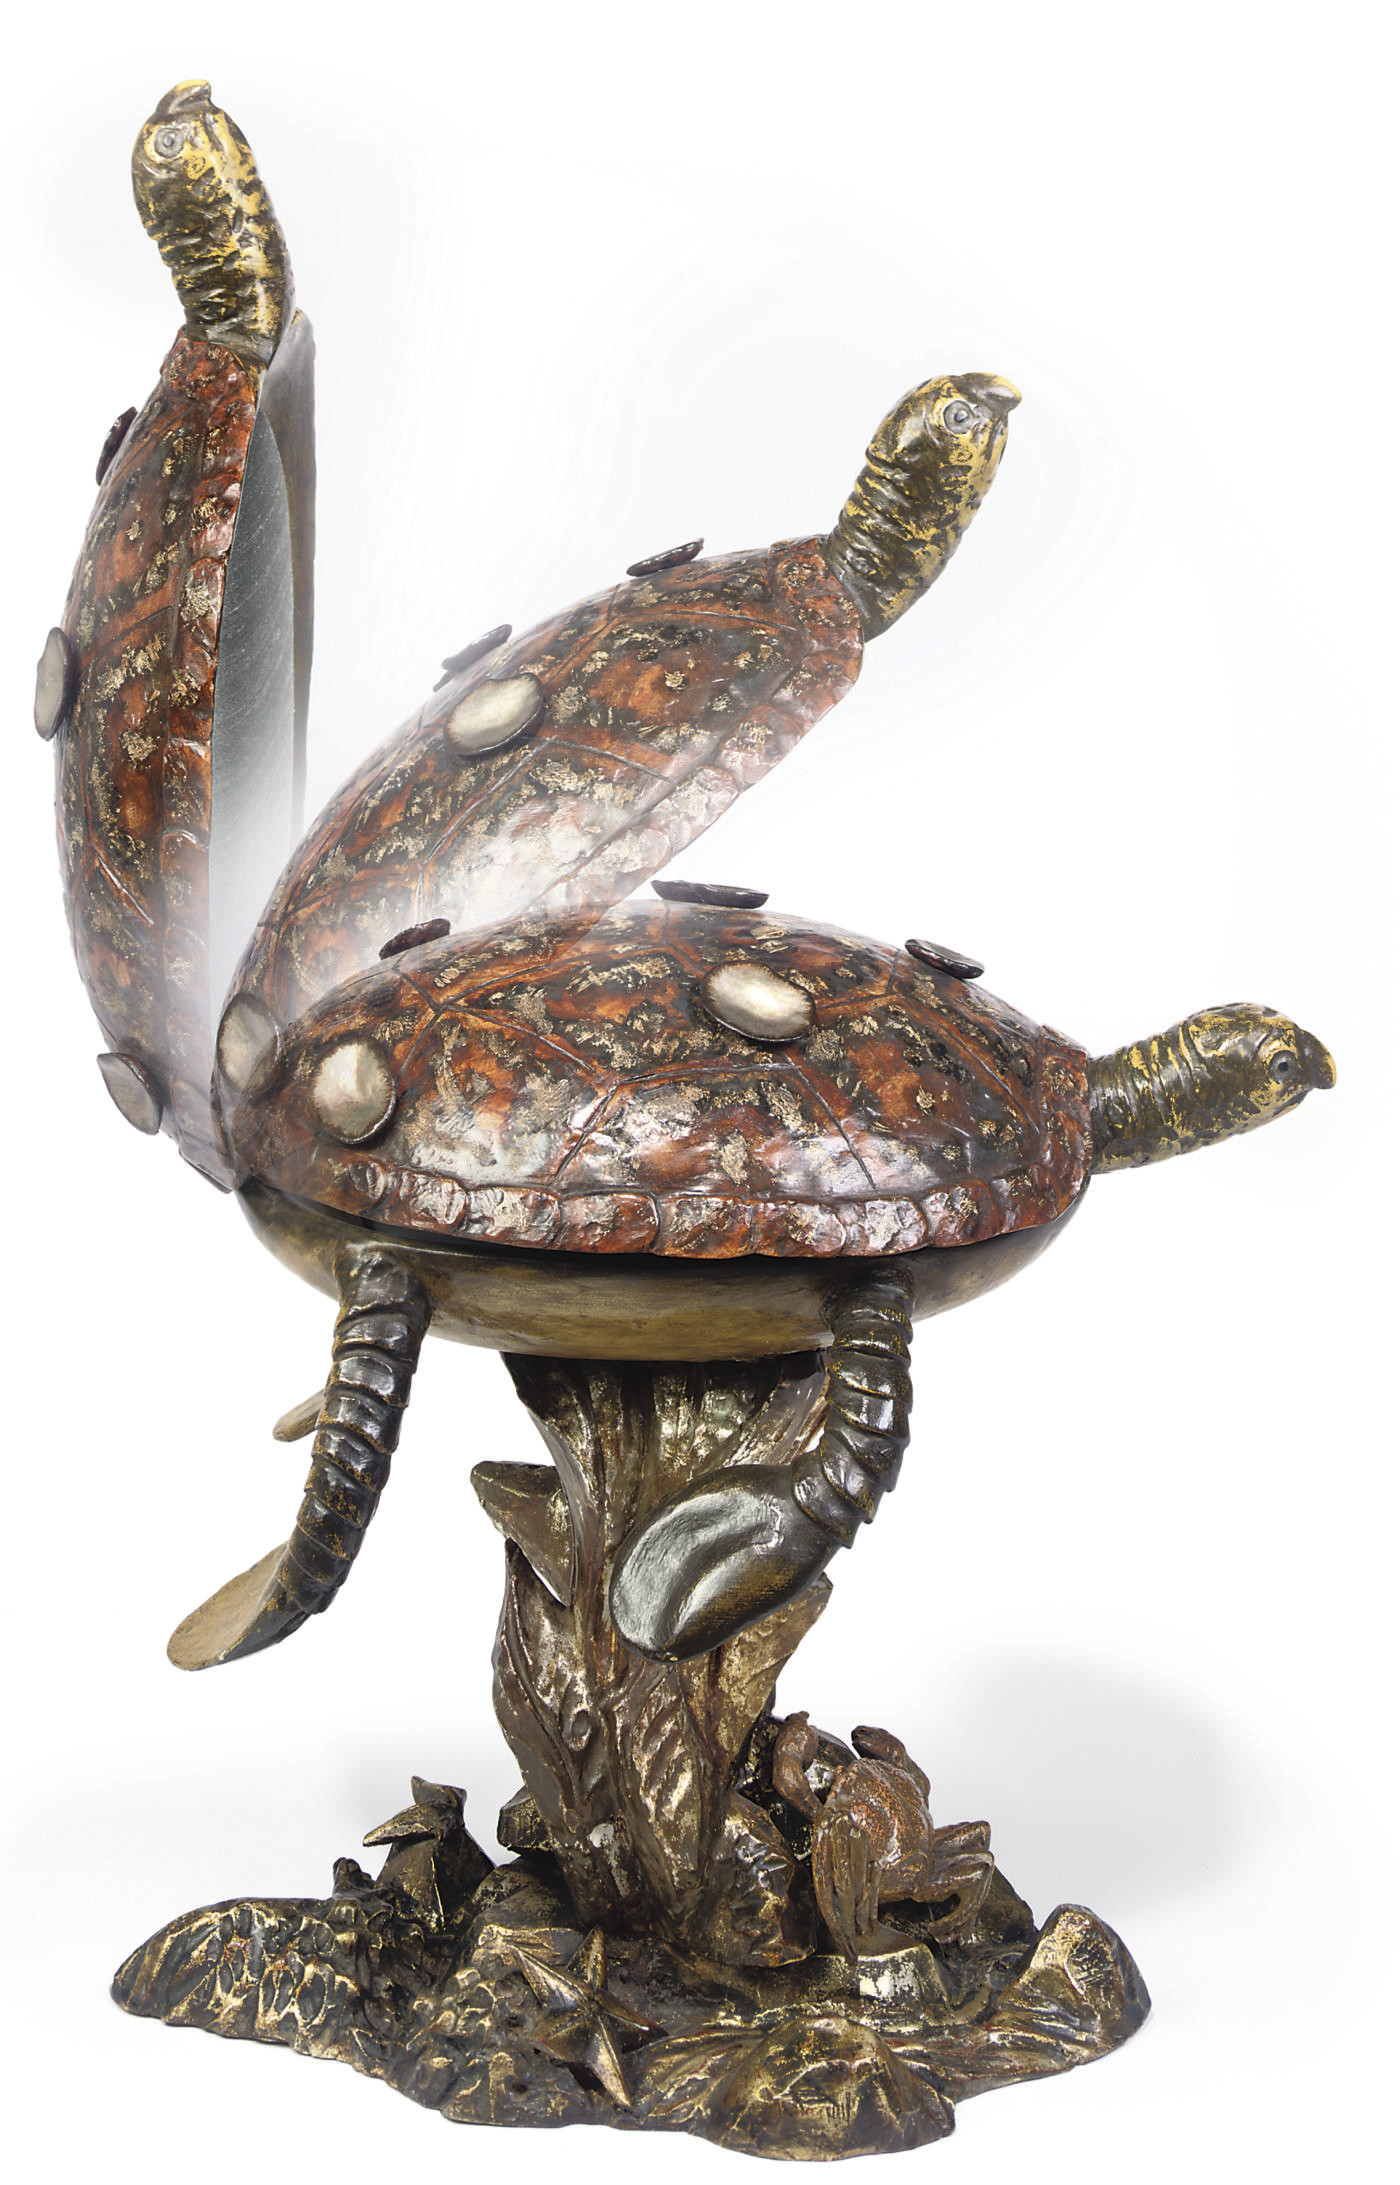 A VENETIAN DECORATED TURTLE CH